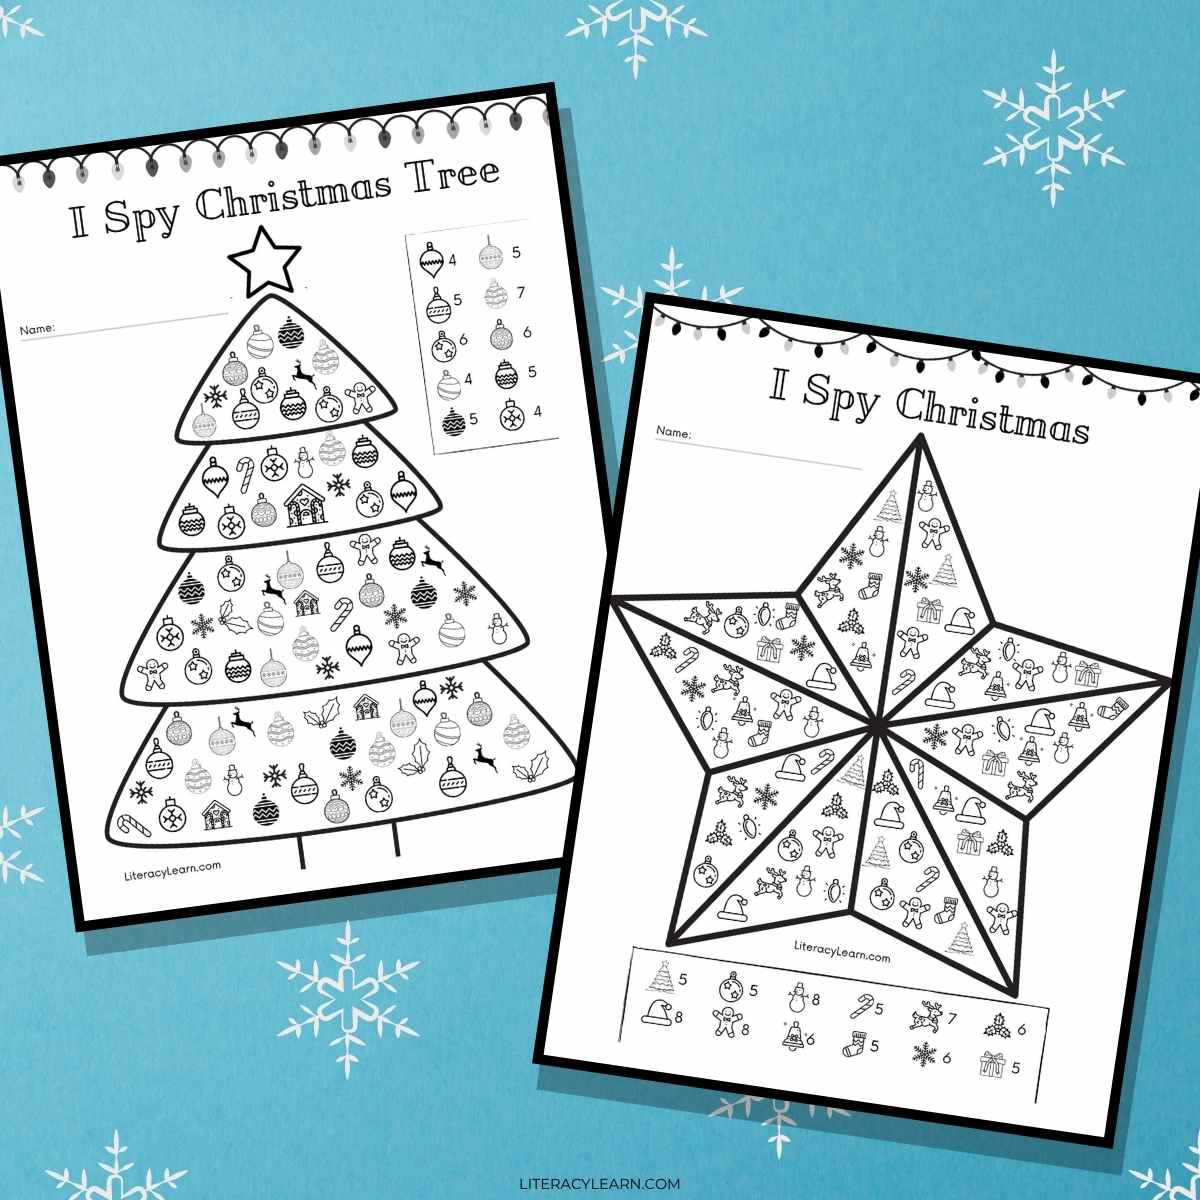 The two I Spy Christmas printables on a blue background, surrounded by white snowflakes.